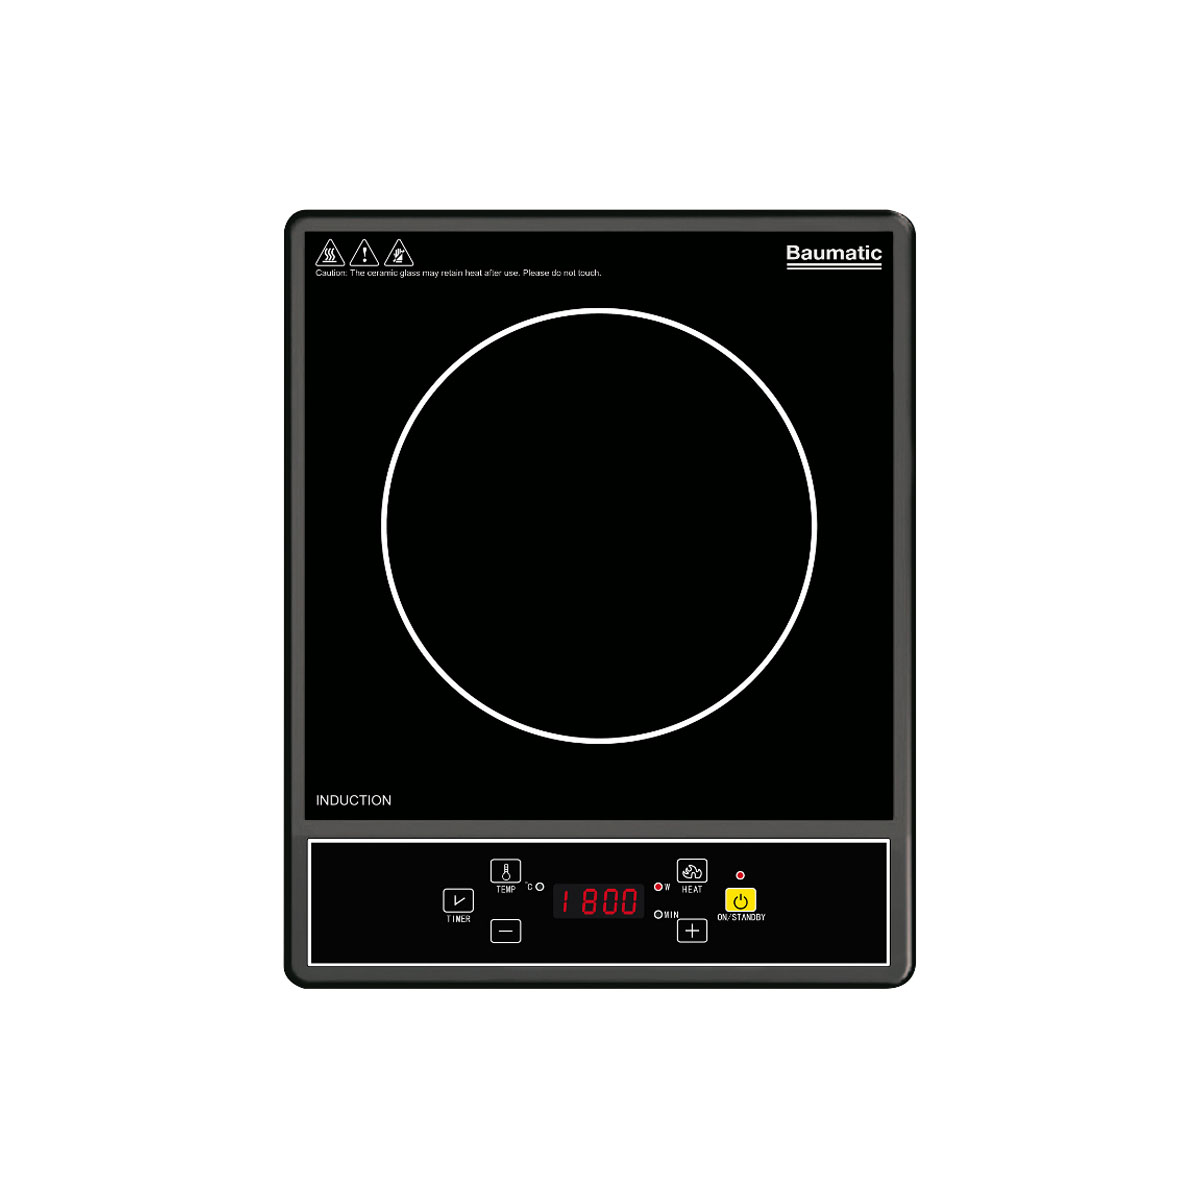 Baumatic BHI100 Portable Induction Cooktop